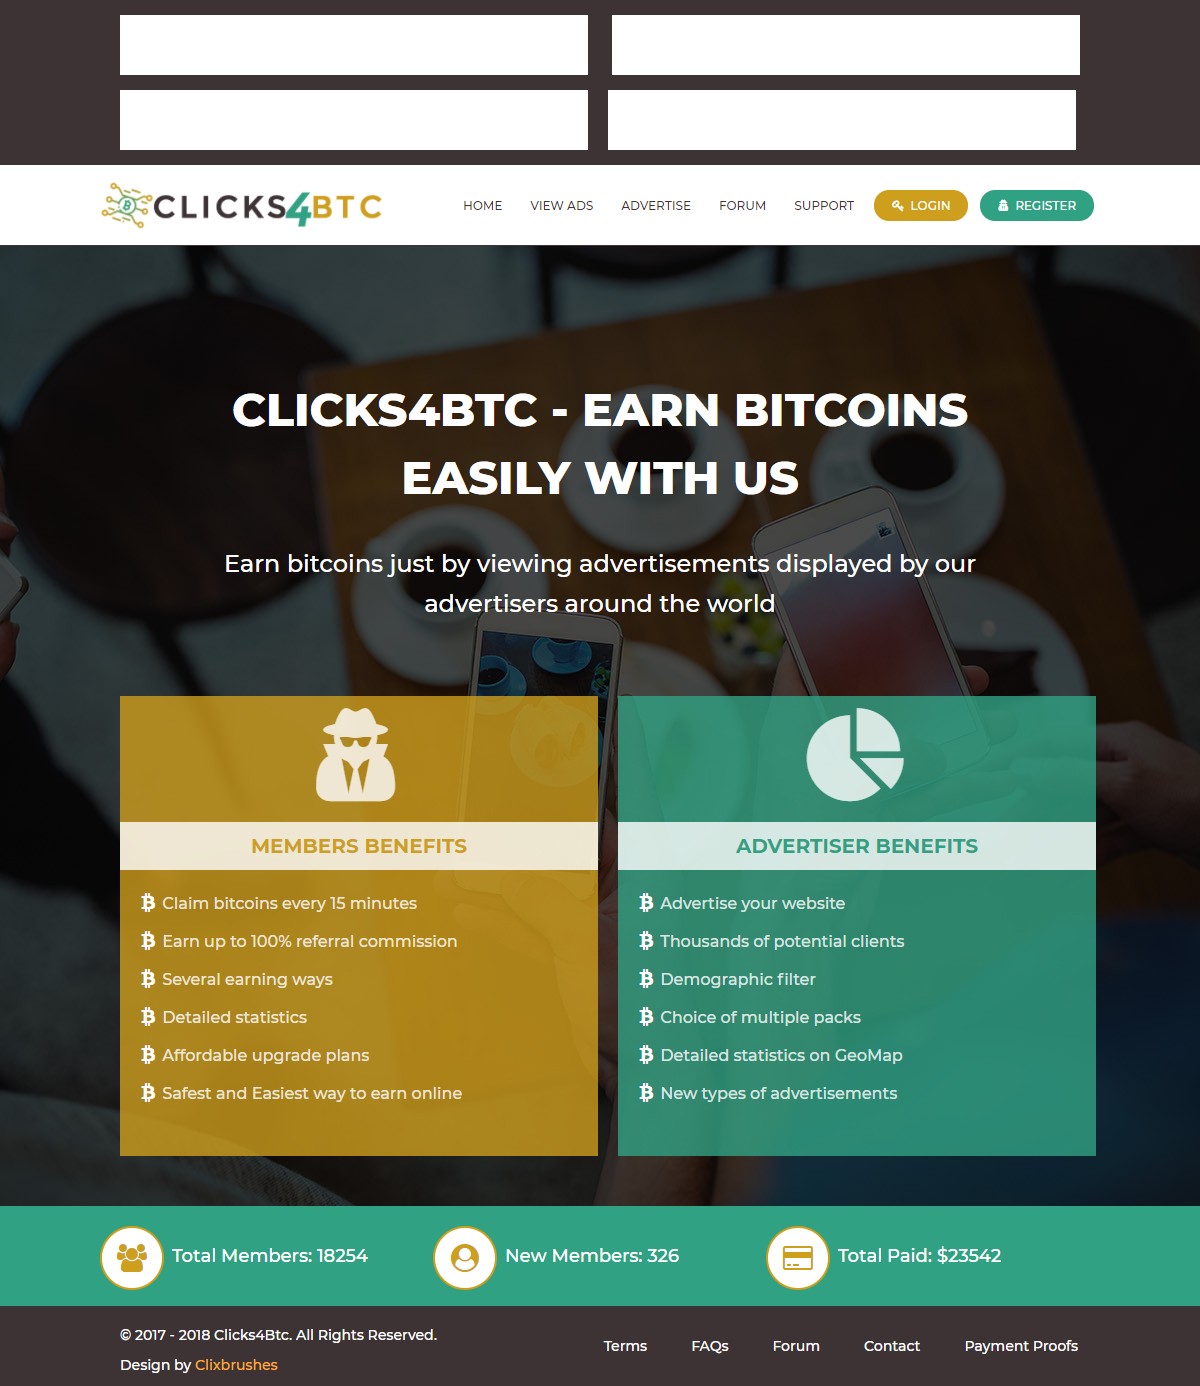 Clicks4btc